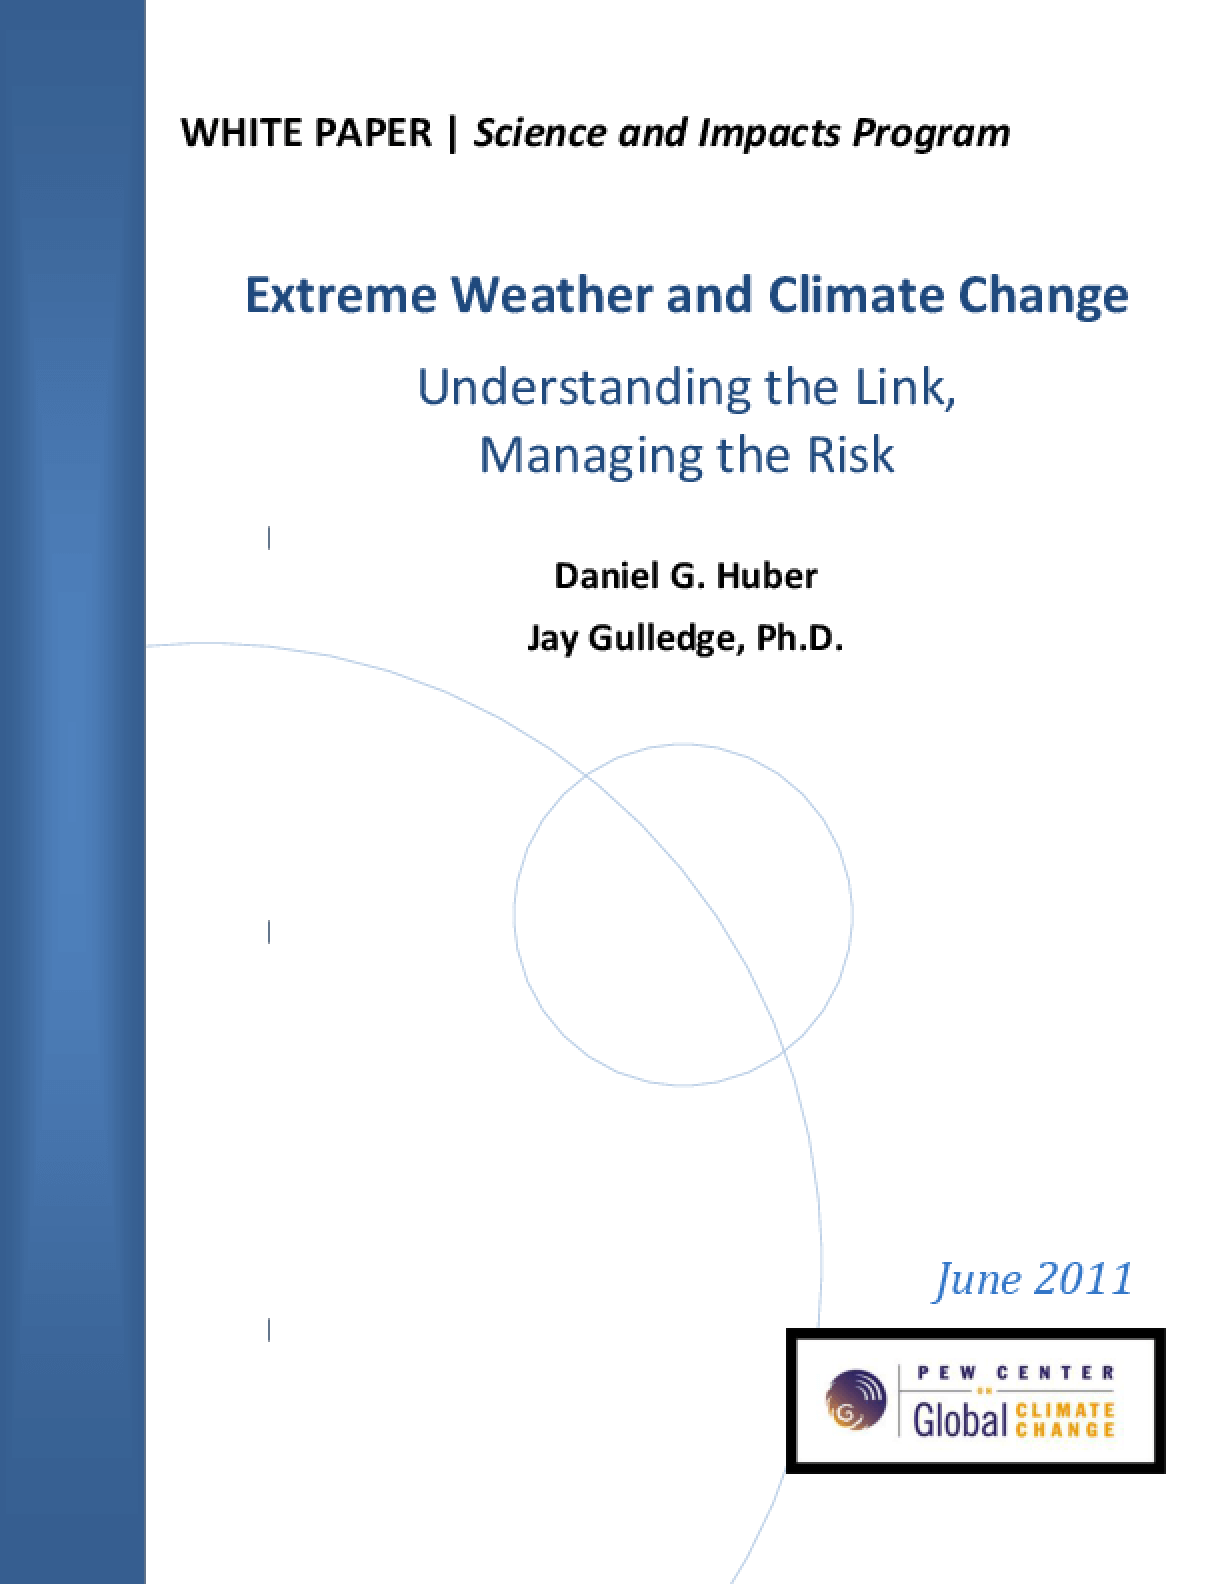 Extreme Weather and Climate Change: Understanding the Link, Managing the Risk